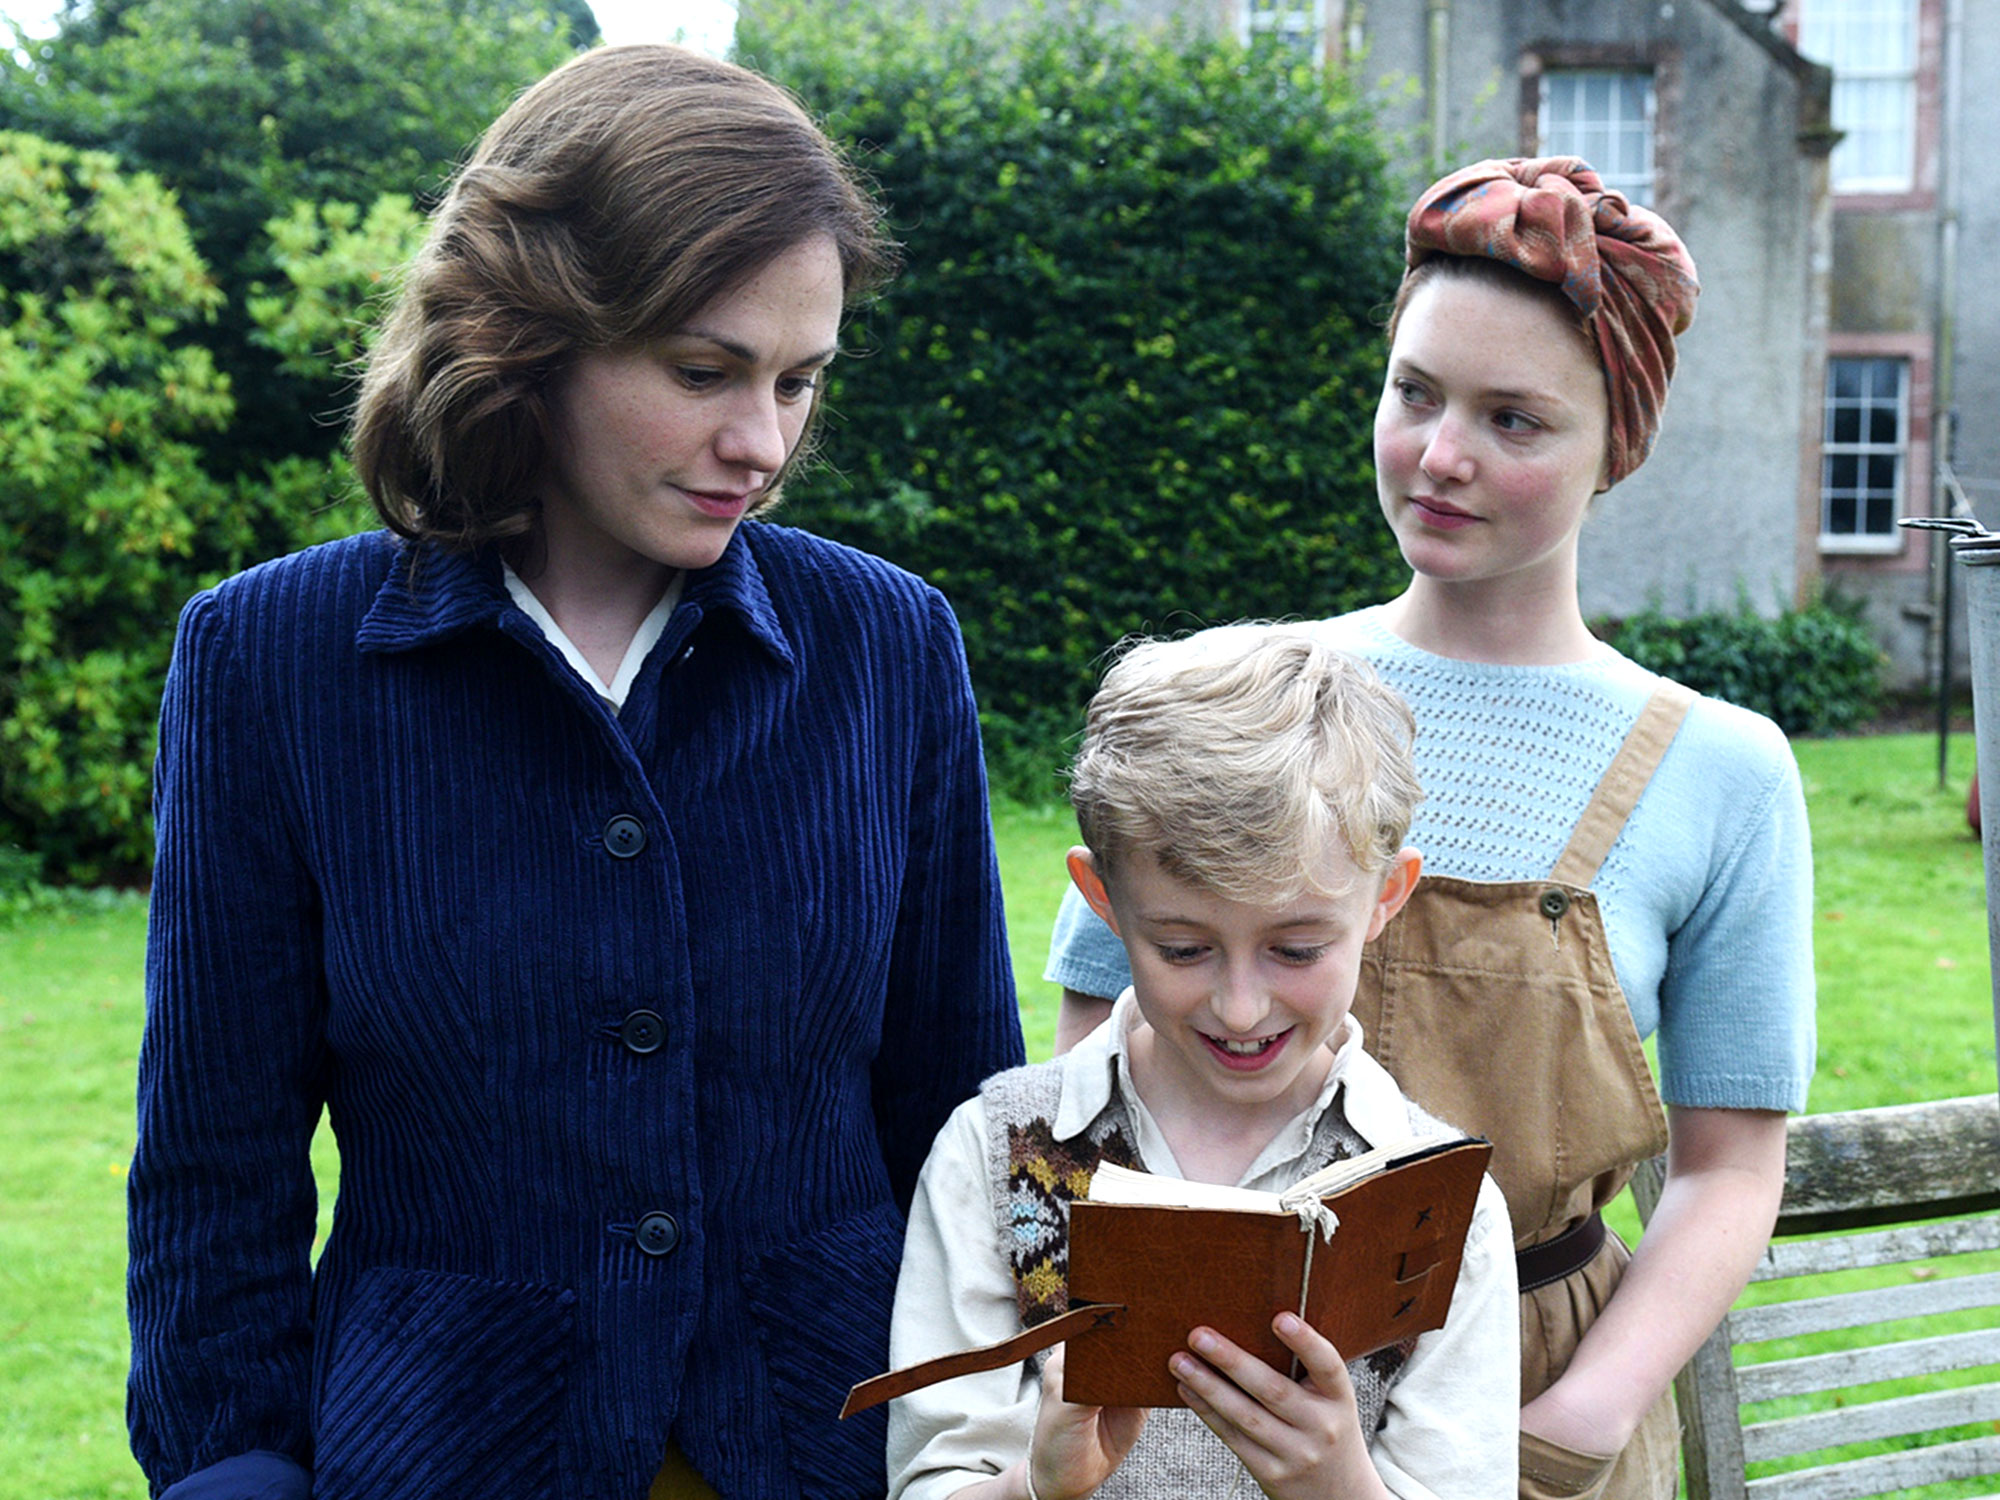 Tell It to the Bees review – Watery tale of forbidden love